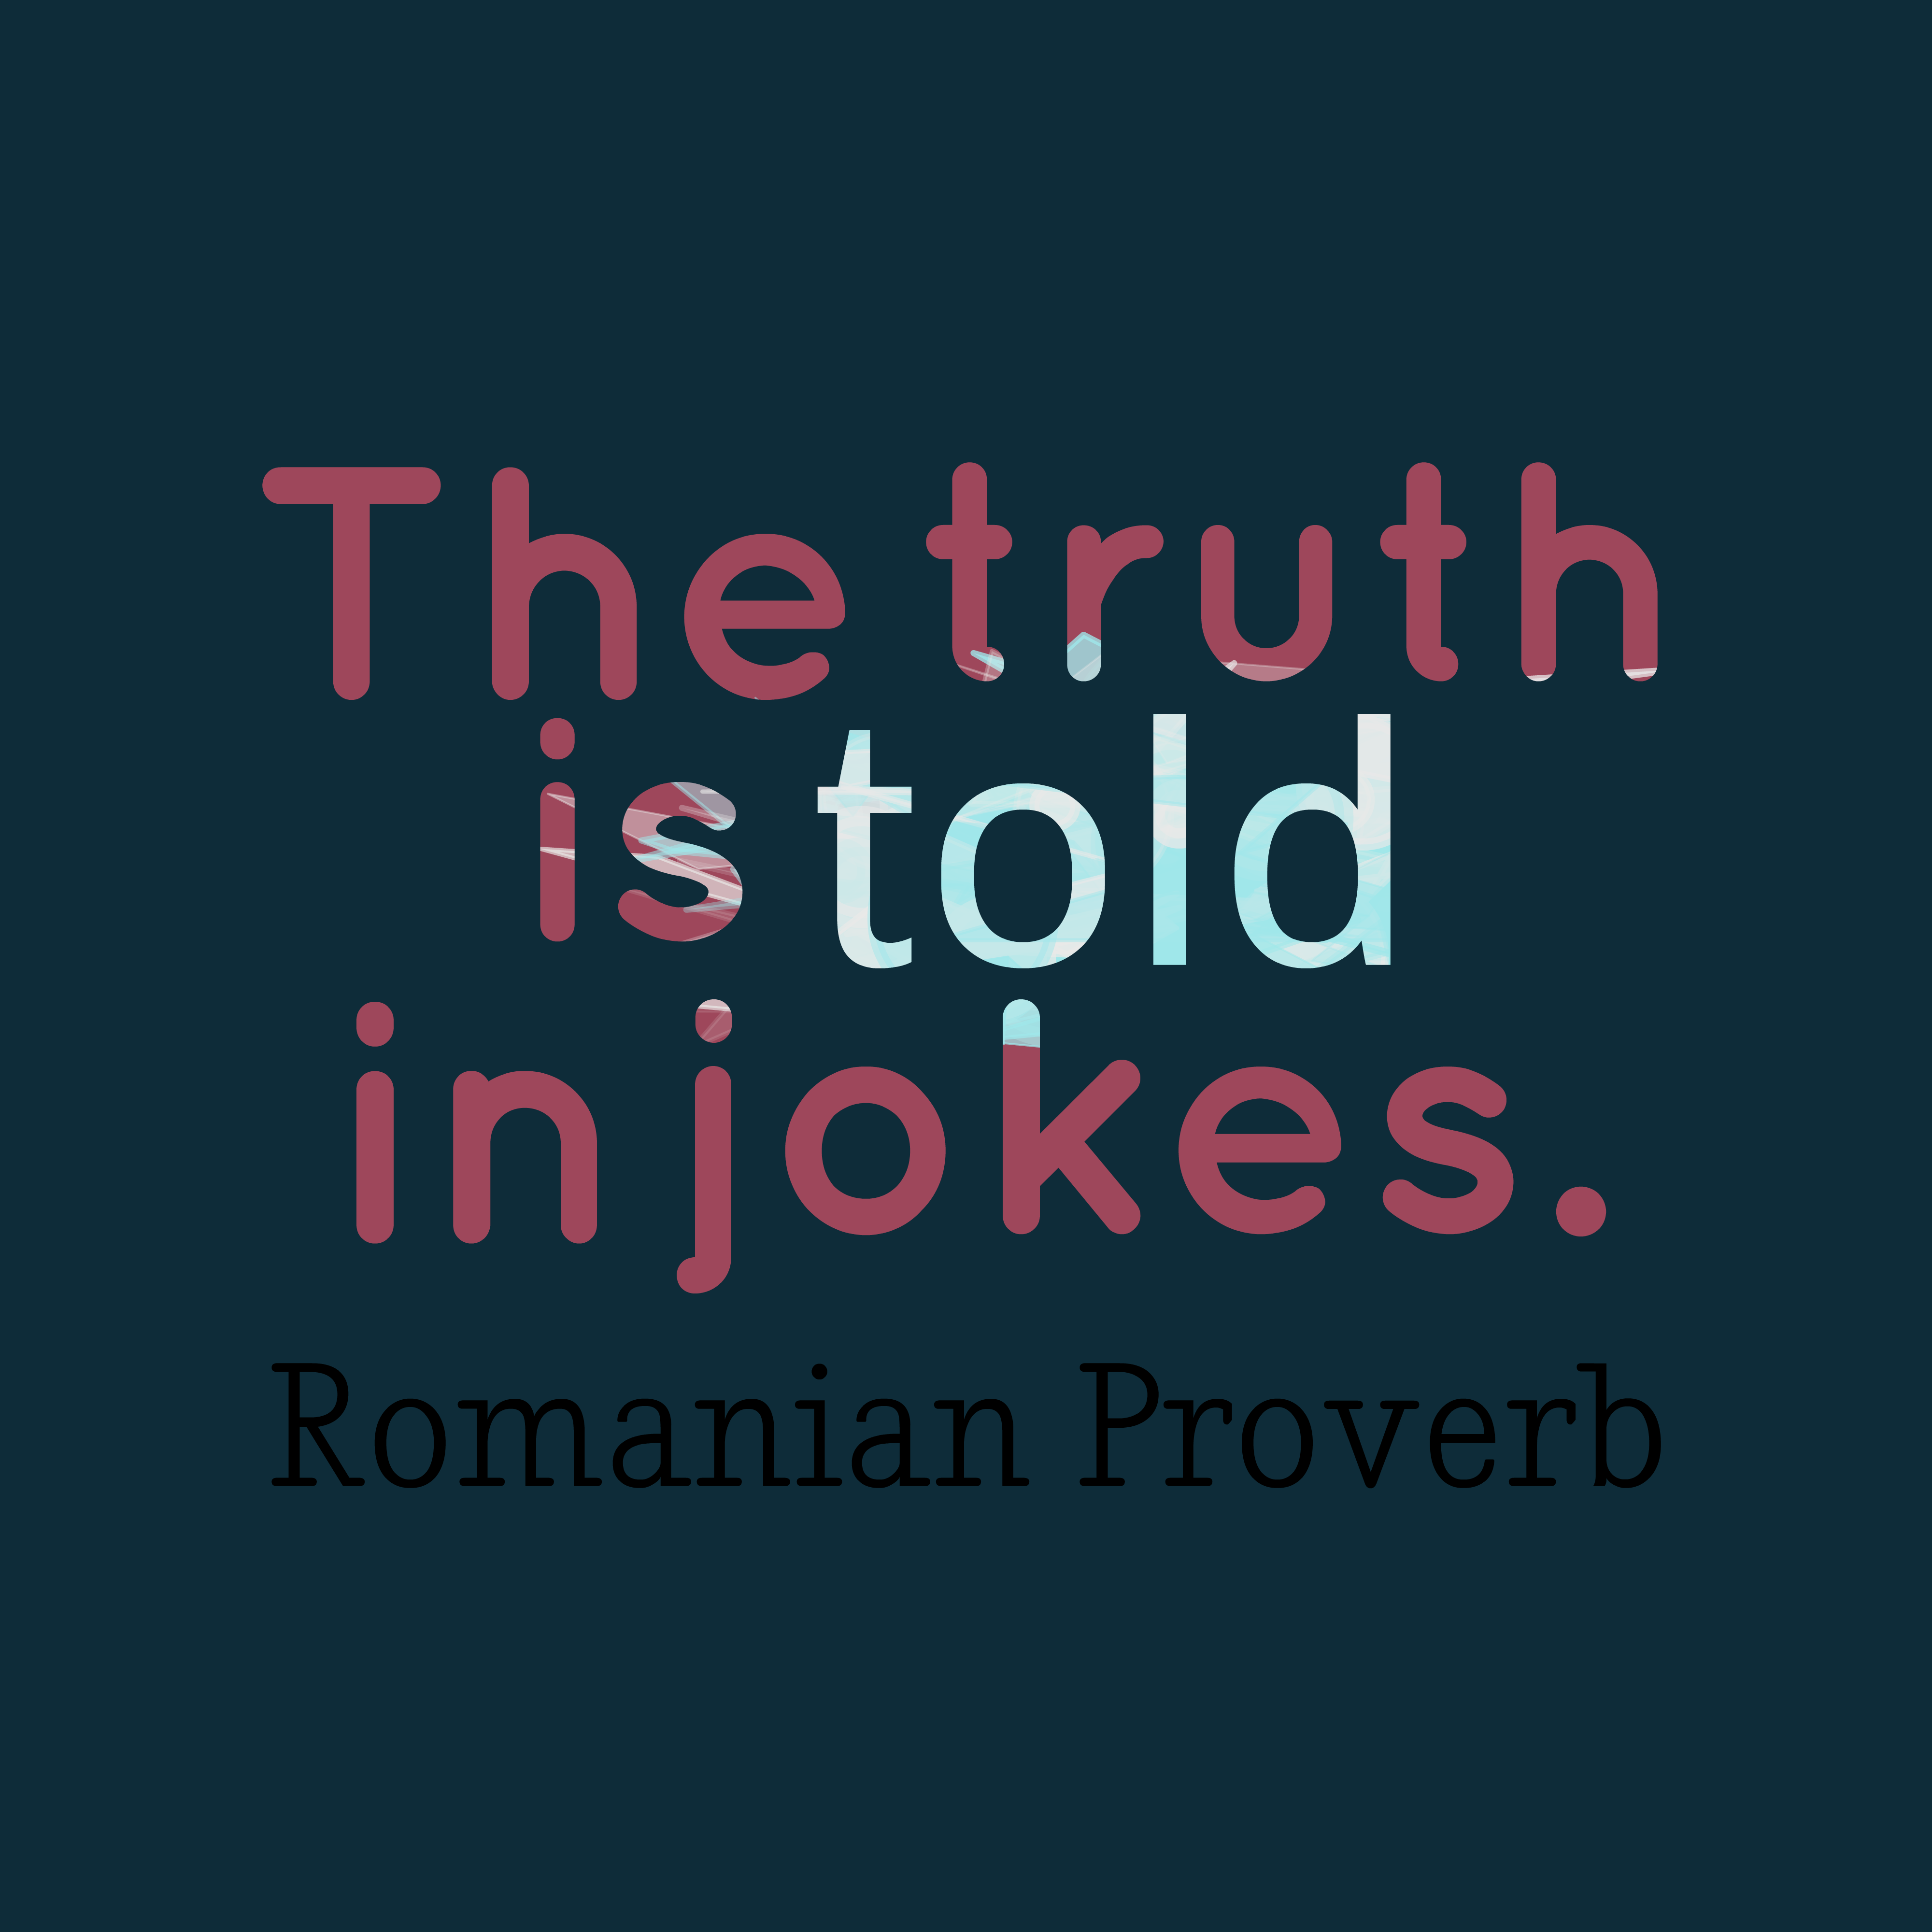 Download Slam Quotes About Truth: Get High Resolution Using Text From Romanian Proverb About